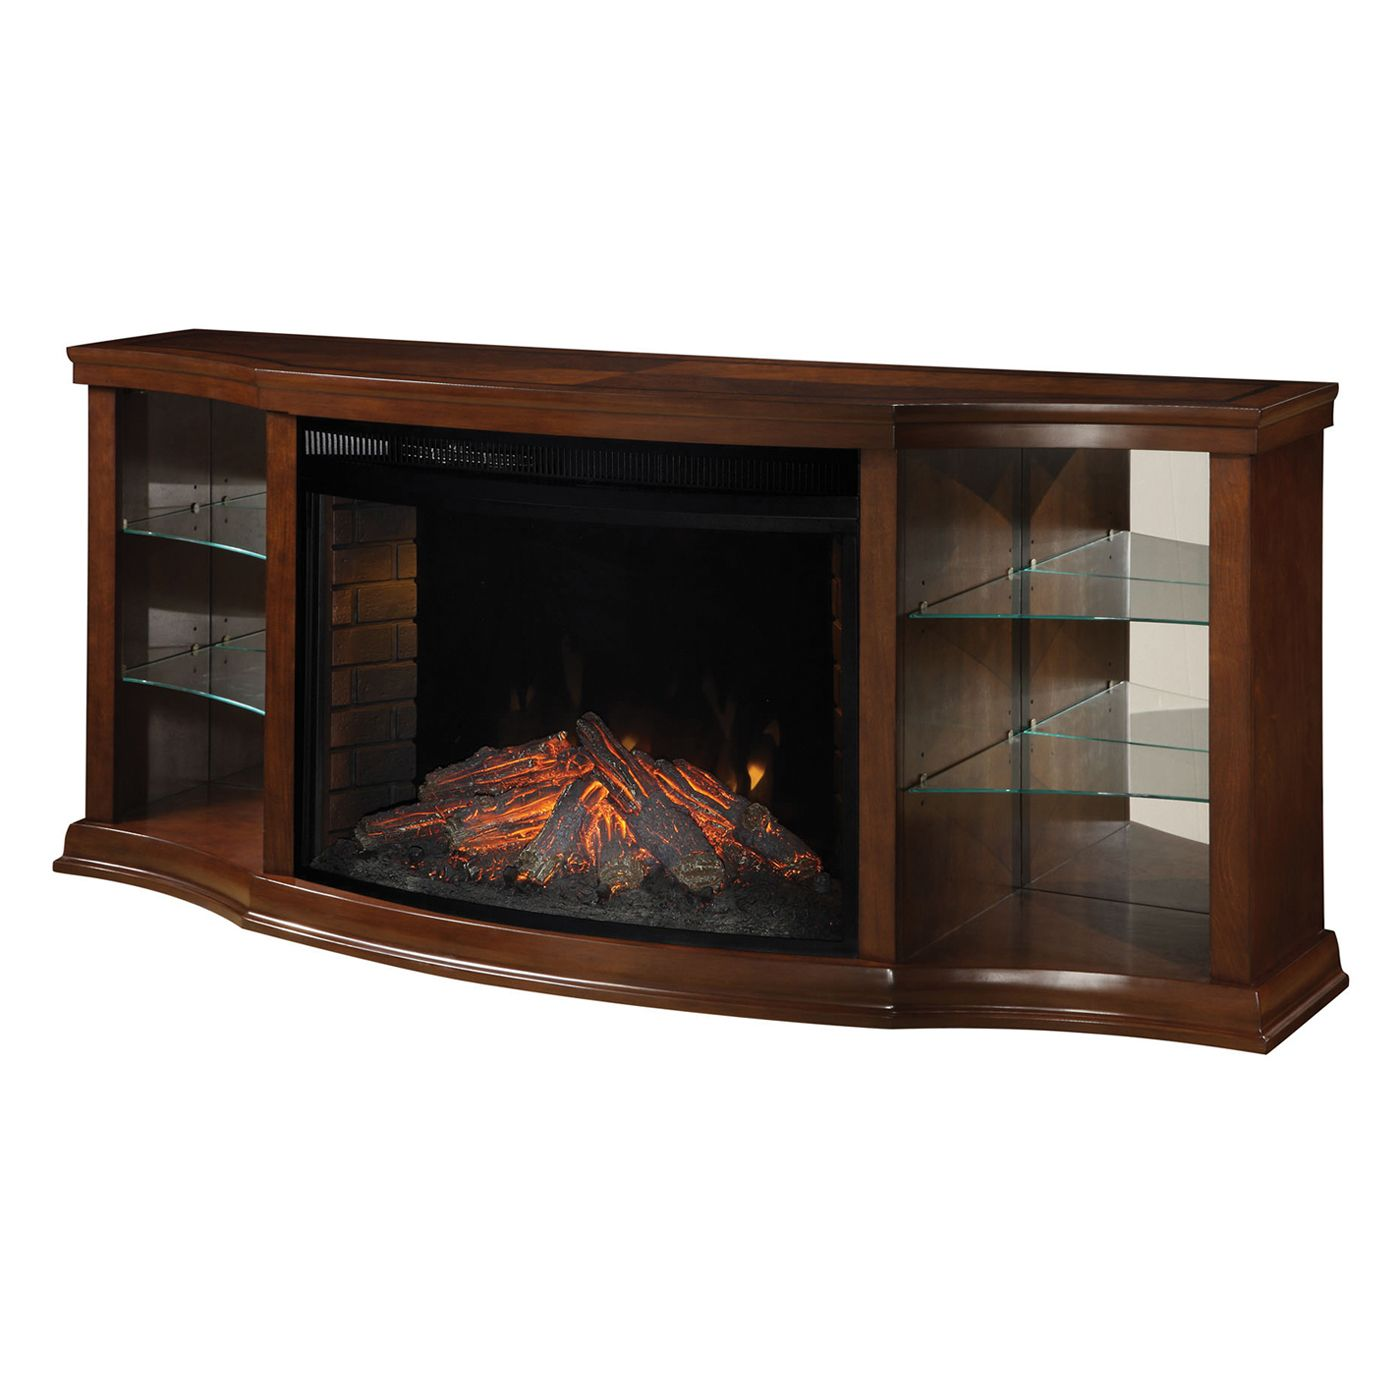 The Muskoka Contessa Media Electric Fireplace features glass